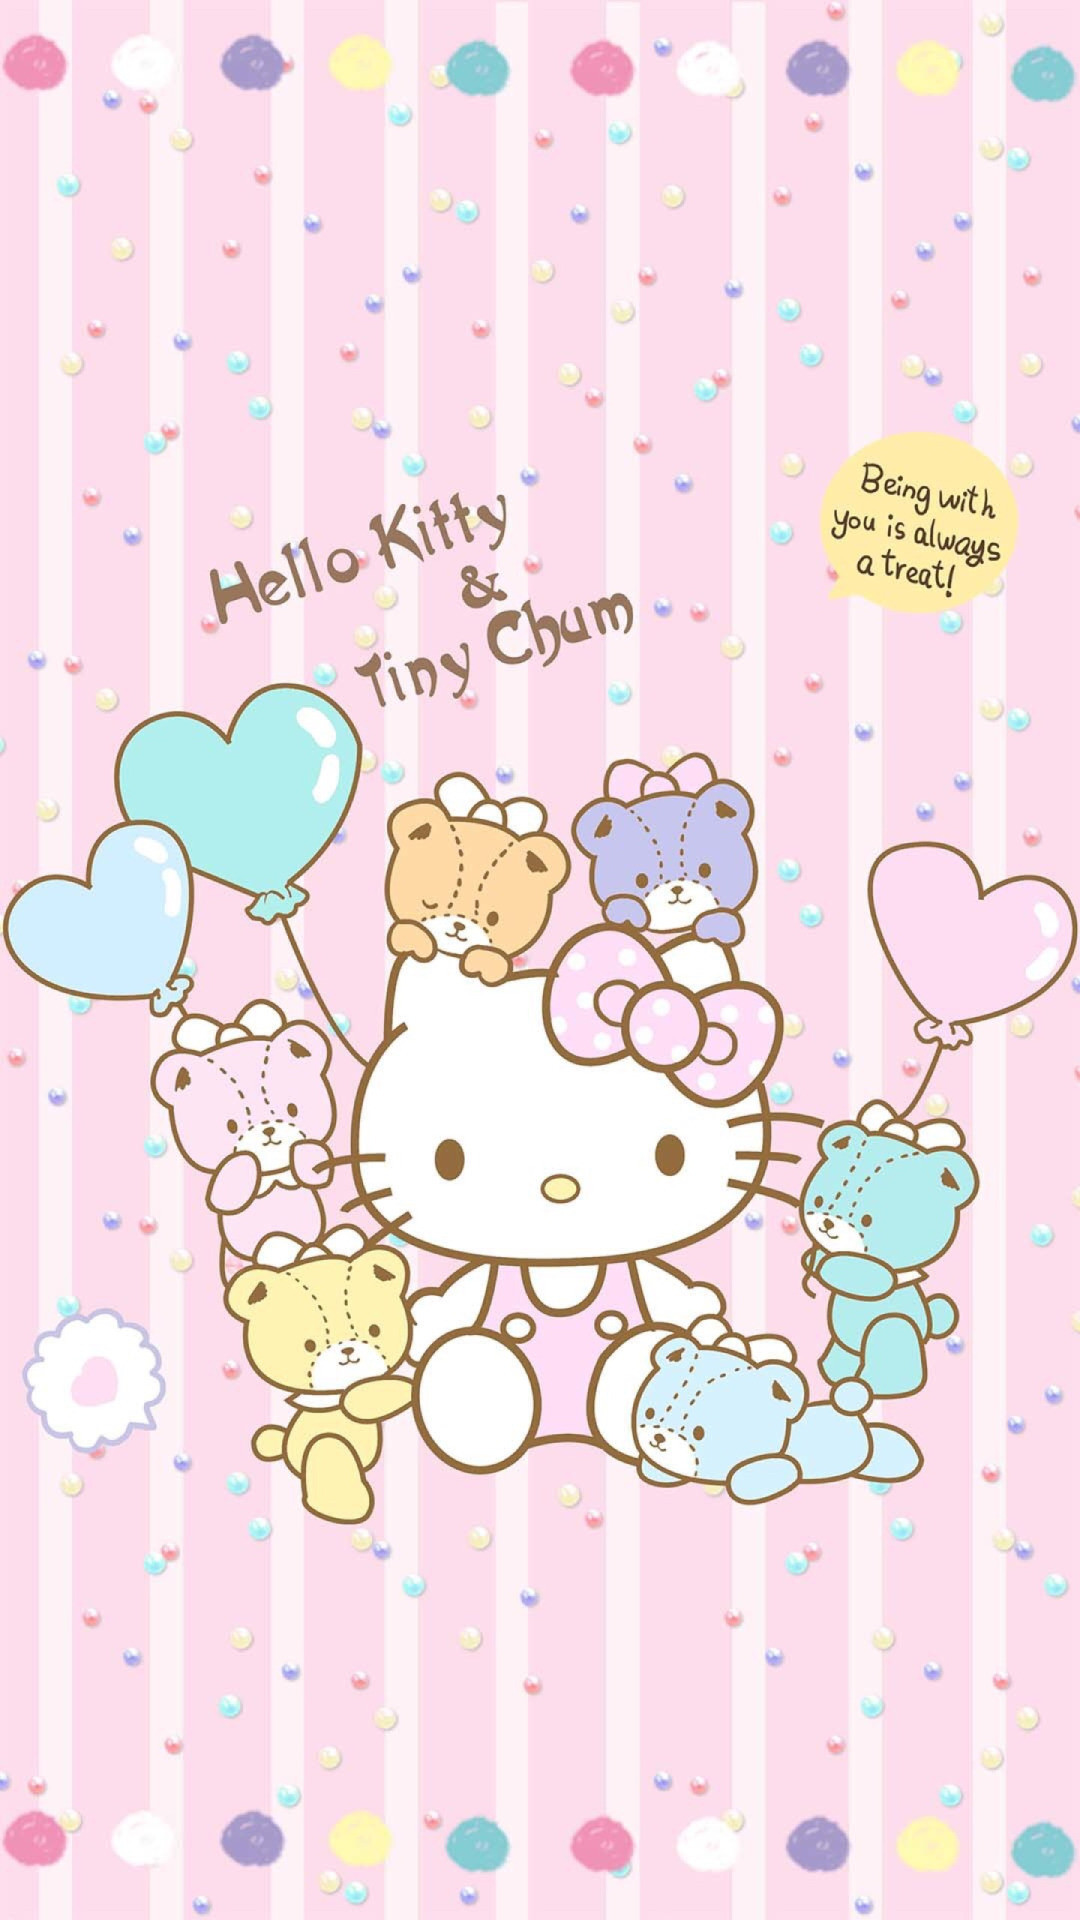 Wonderful Wallpaper Hello Kitty Silver - 1006082-amazing-hello-kitty-wallpapers-and-screensavers-1080x1920-for-mobile  Pictures_307539.jpg